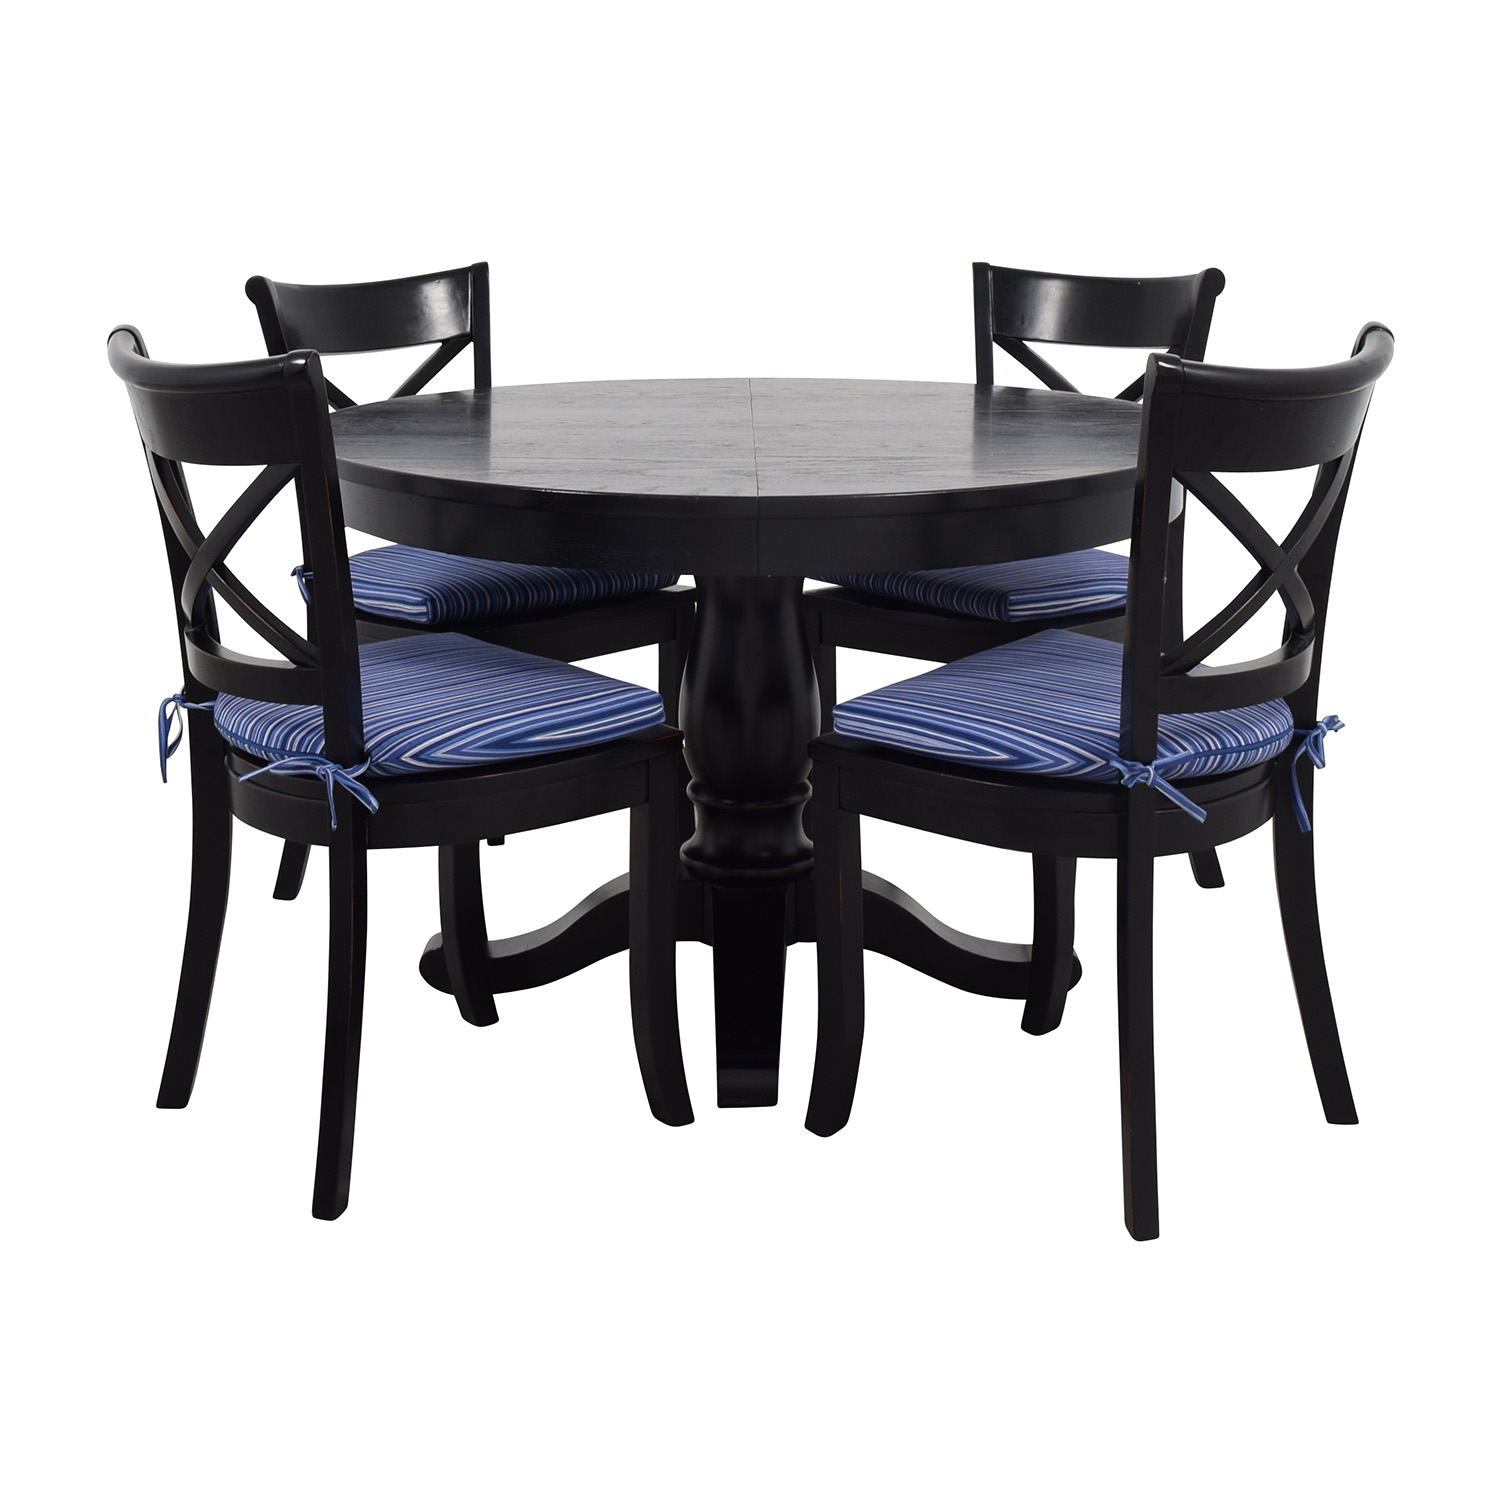 Crate And Barrel Dining Chairs: Crate & Barrel Crate & Barrel Table And Chairs